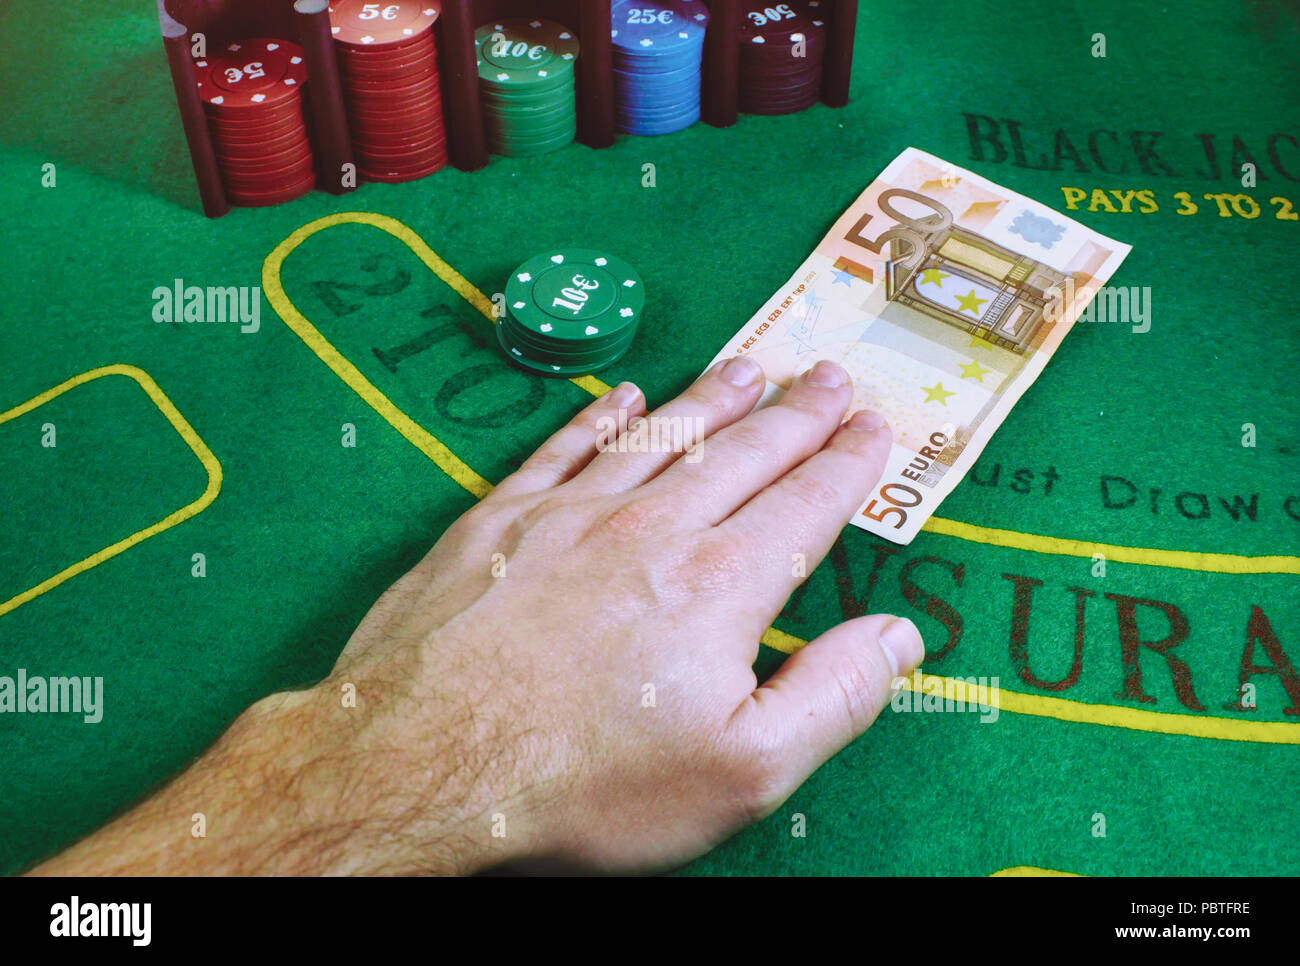 50 Euro note being exchanged for gaming chips on a green felt Blackjack table at the casino - Stock Image